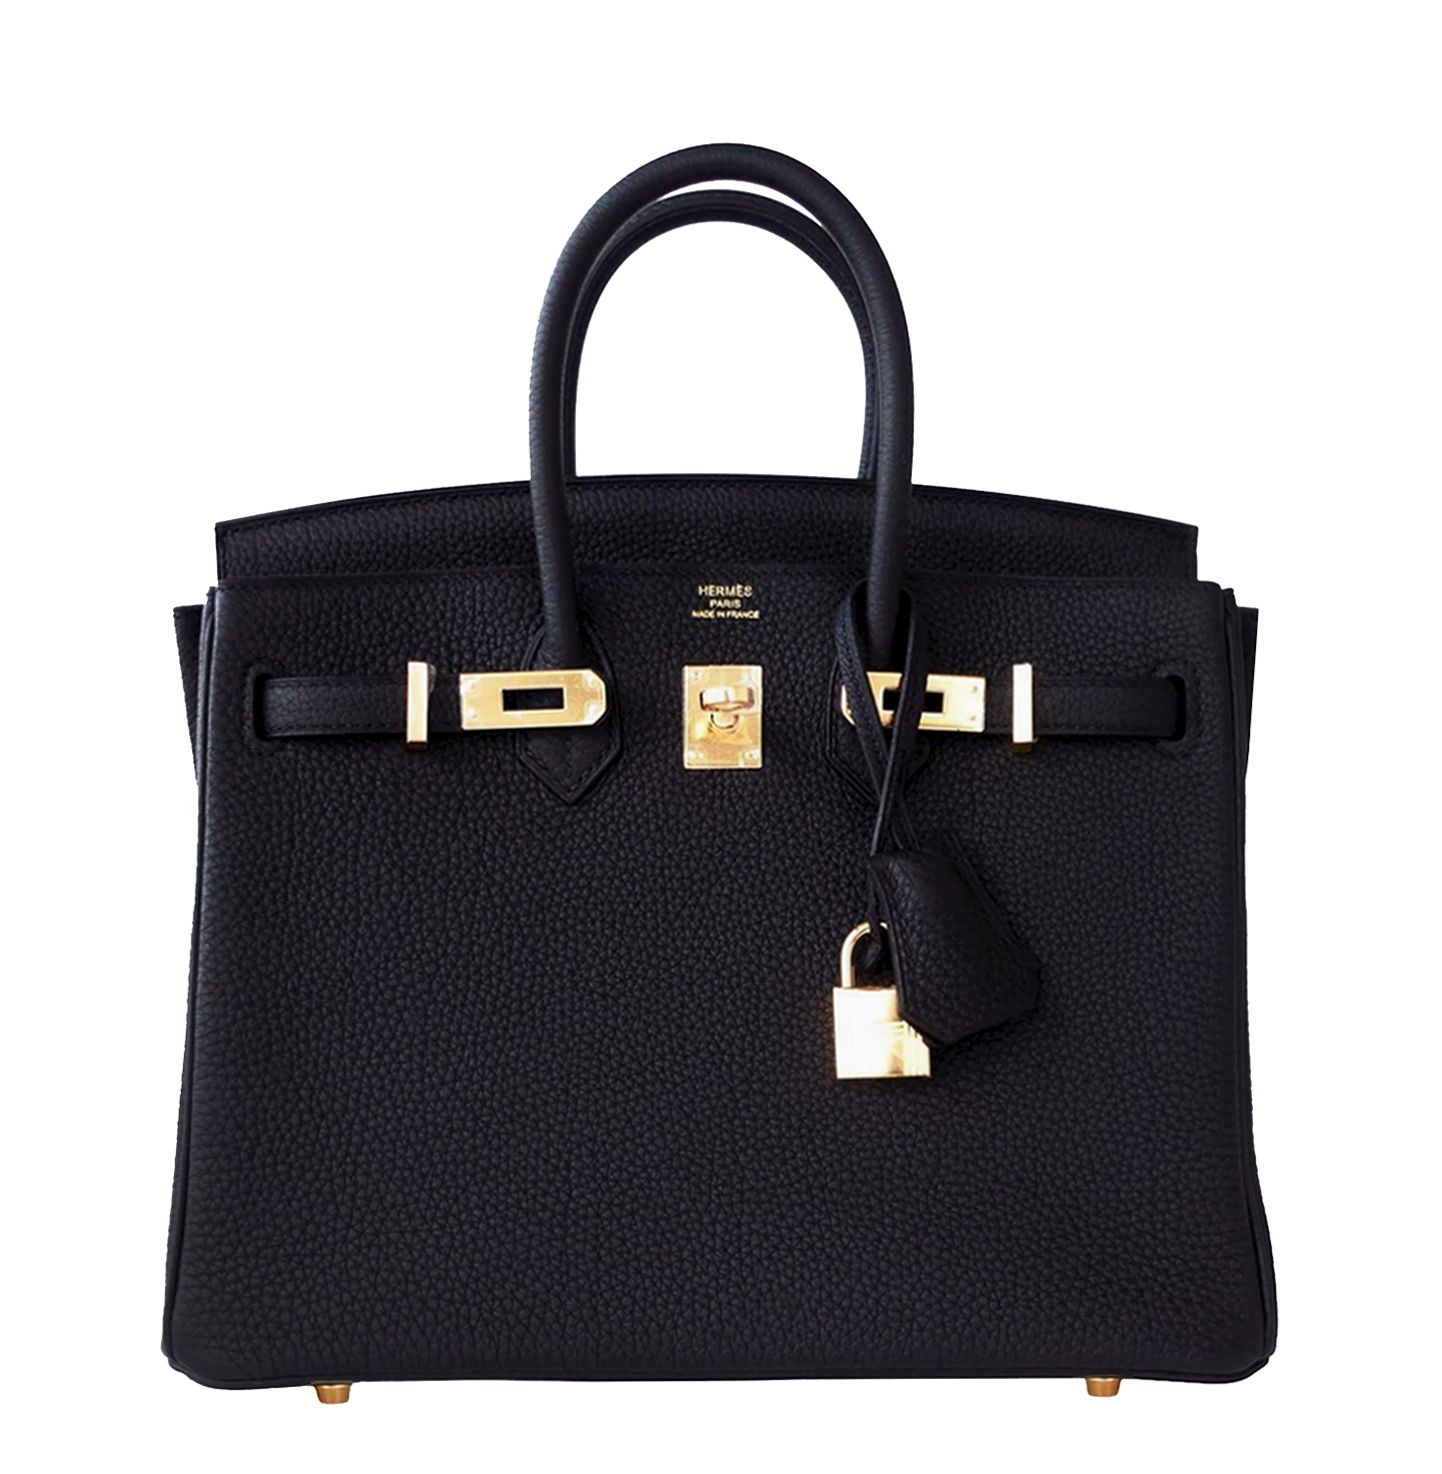 353c5ead3d10 Hermes  Birkin  Bag Black Togo Gold Hardware